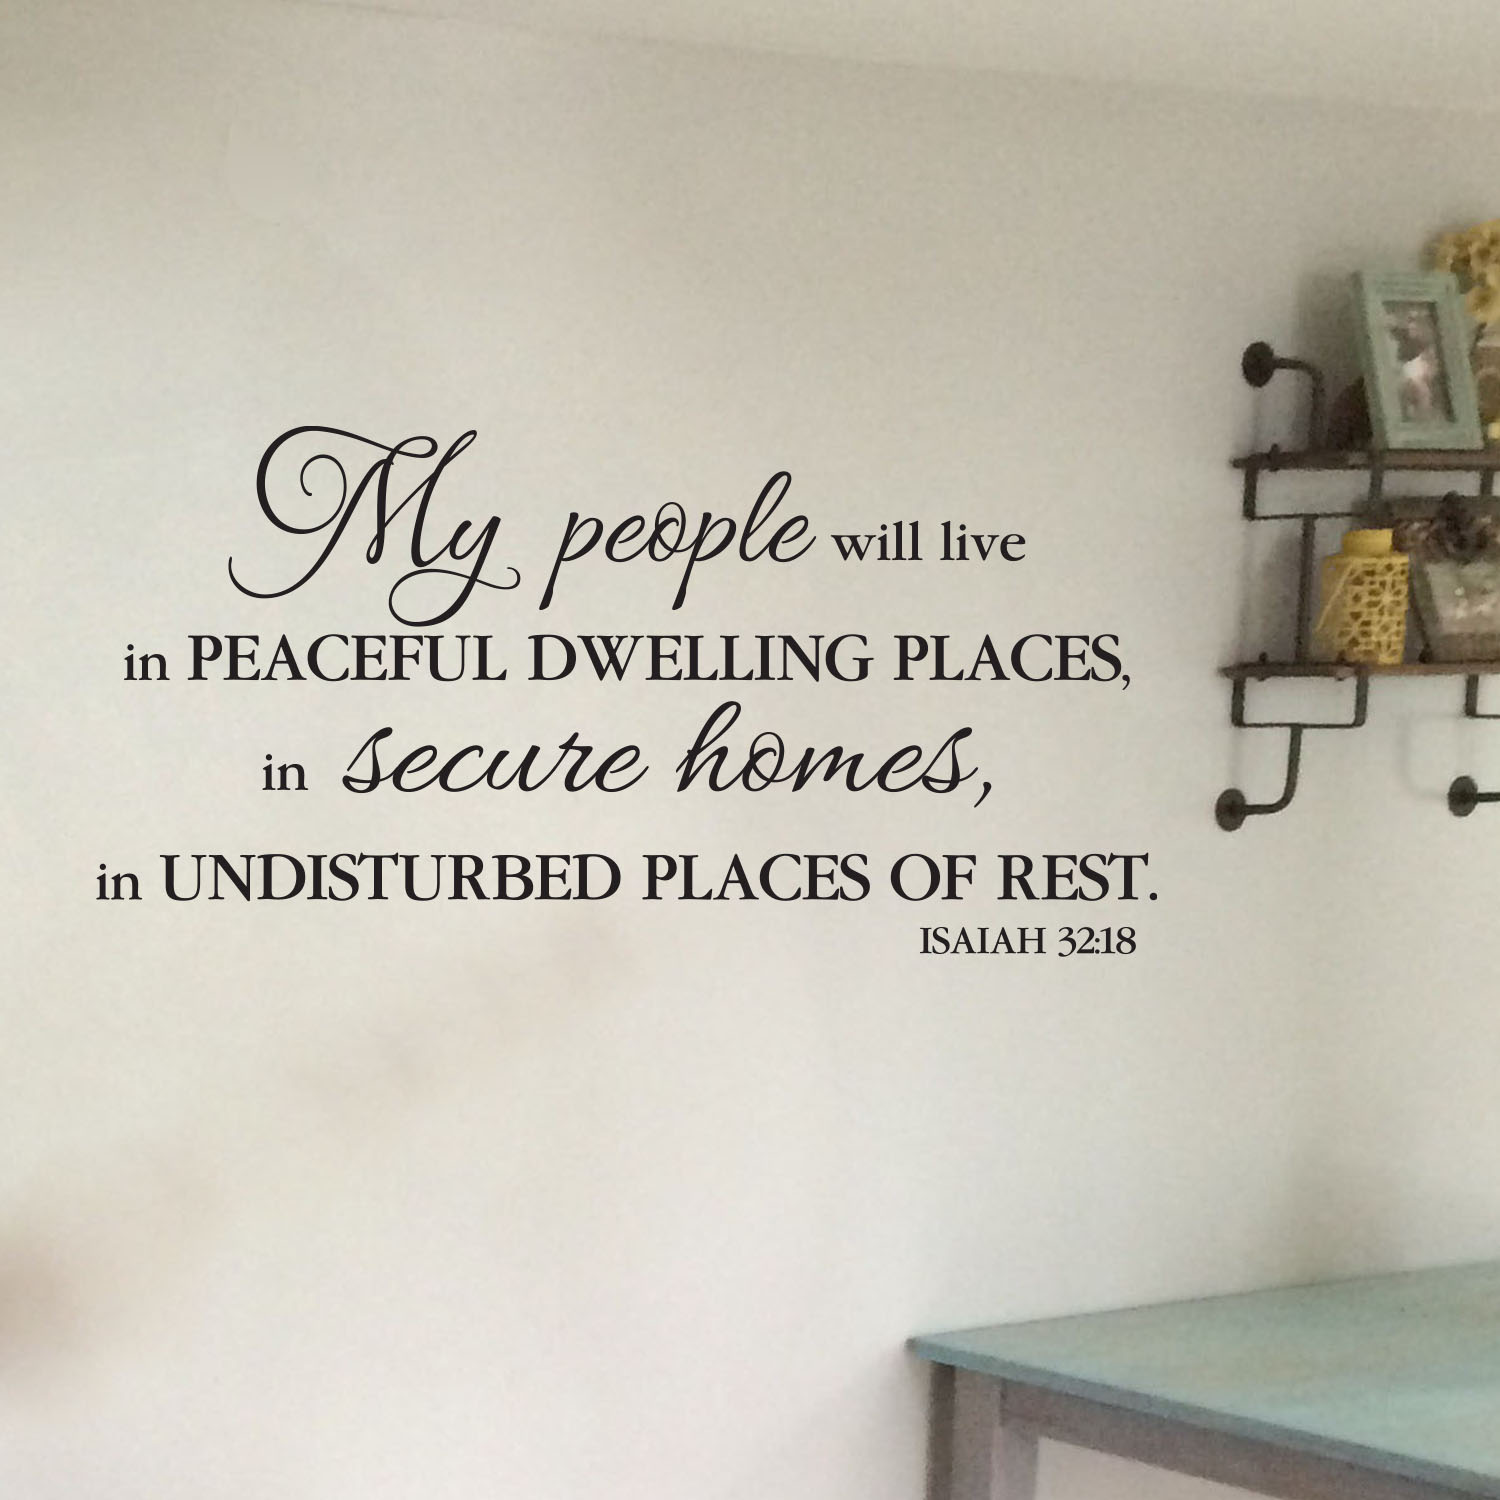 Isaiah 32:18 Vinyl Wall Decal 1, My people will live in peaceful ...